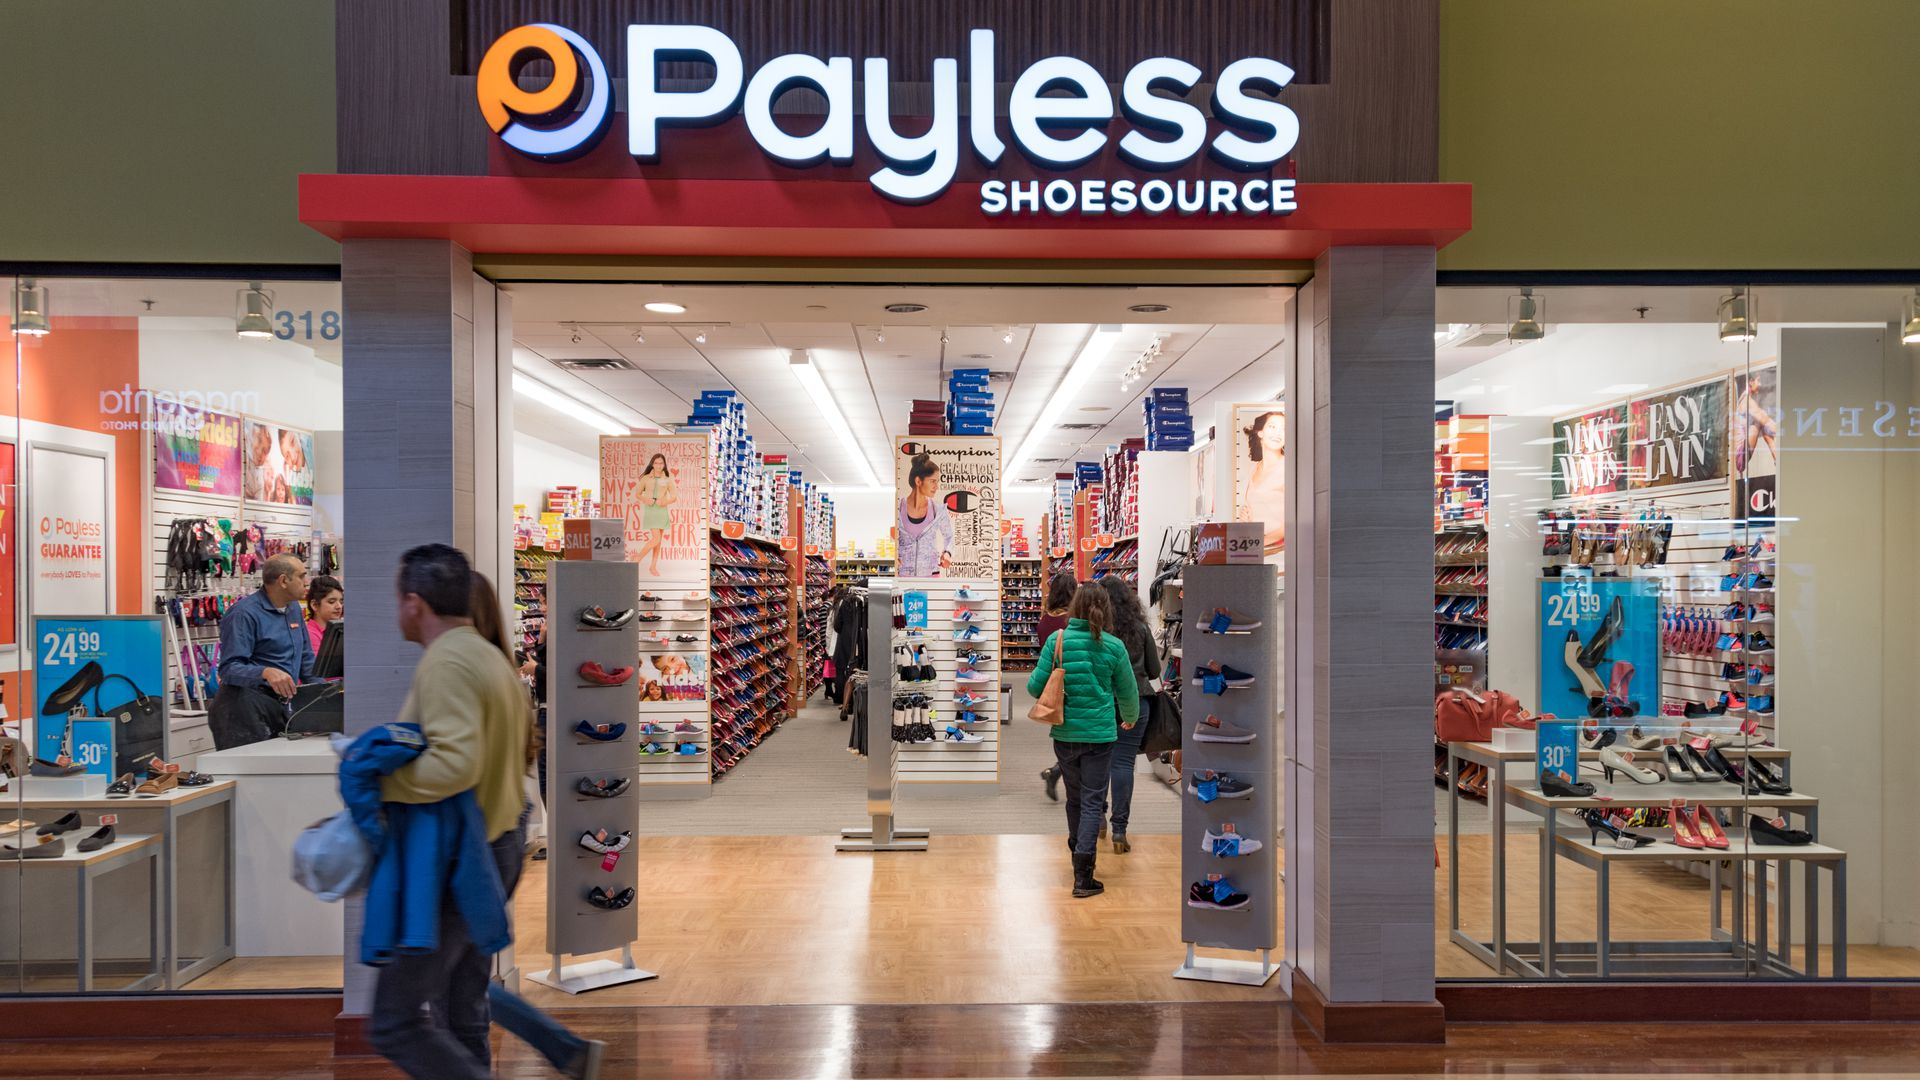 Discount shoe store Payless will shutter all 2,100 U.S. stores